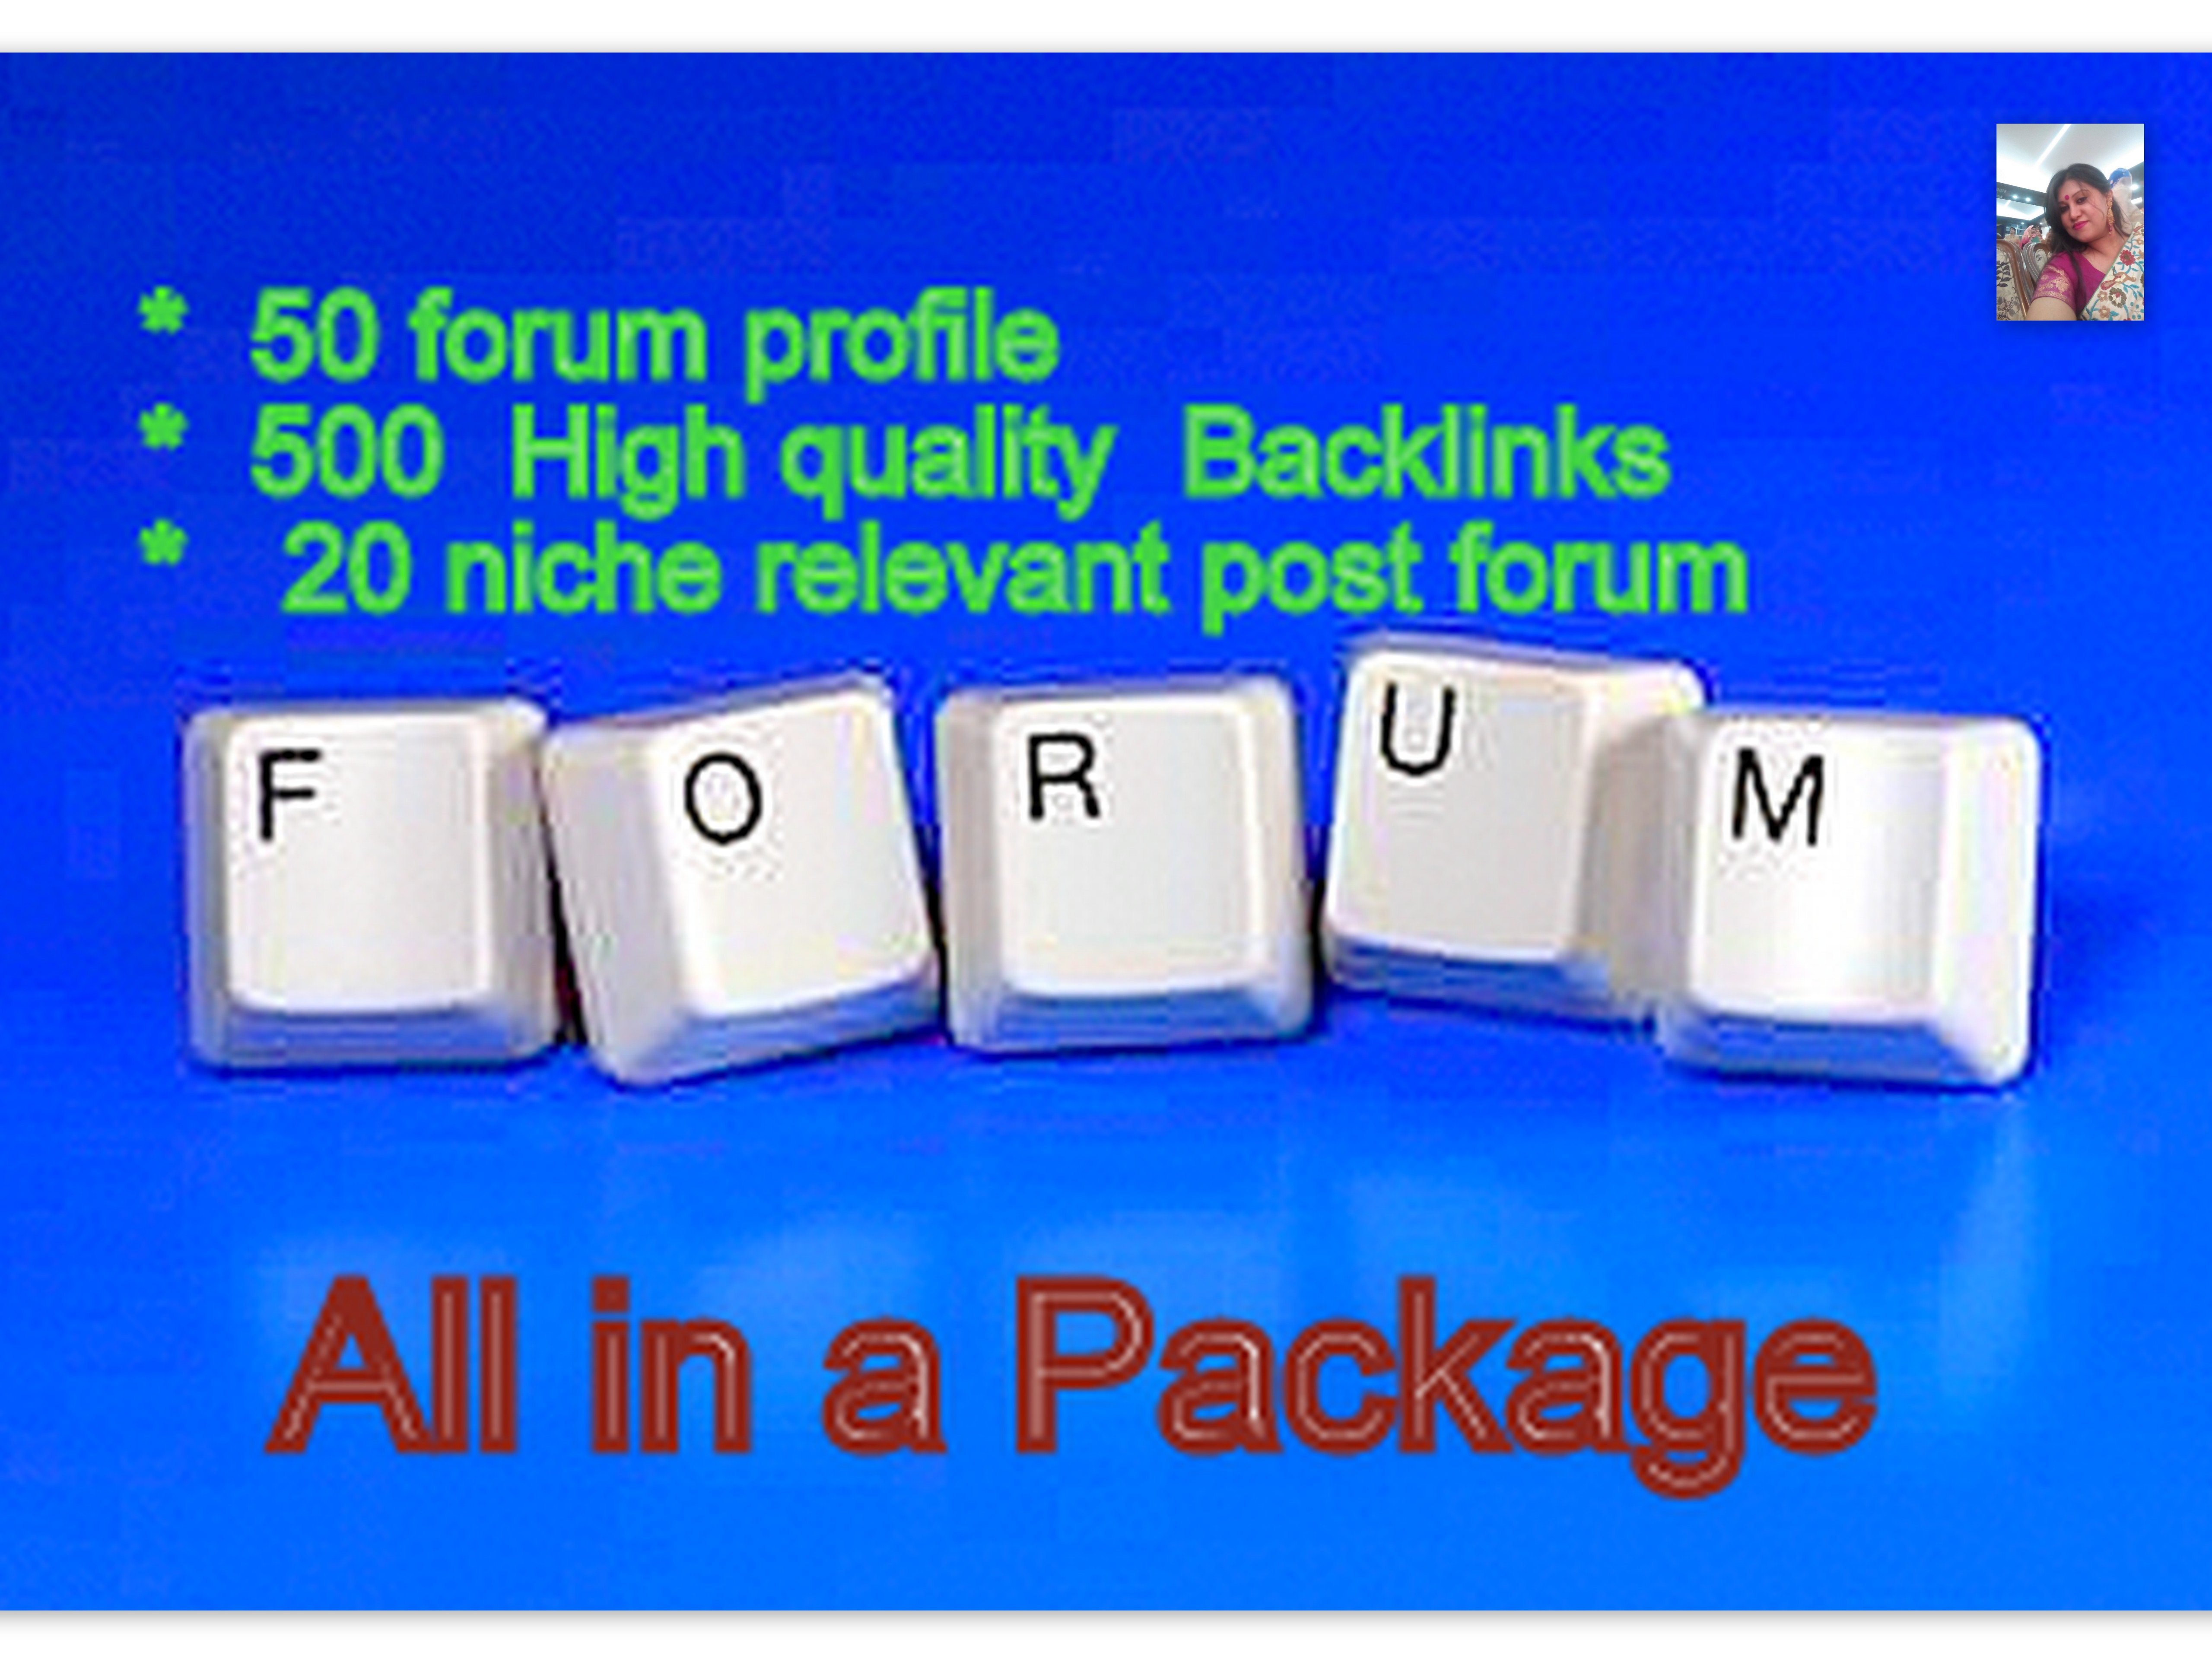 Rank up Your Website on Google By High Quality Back links 50 profile + 500 post+ 20 niche post